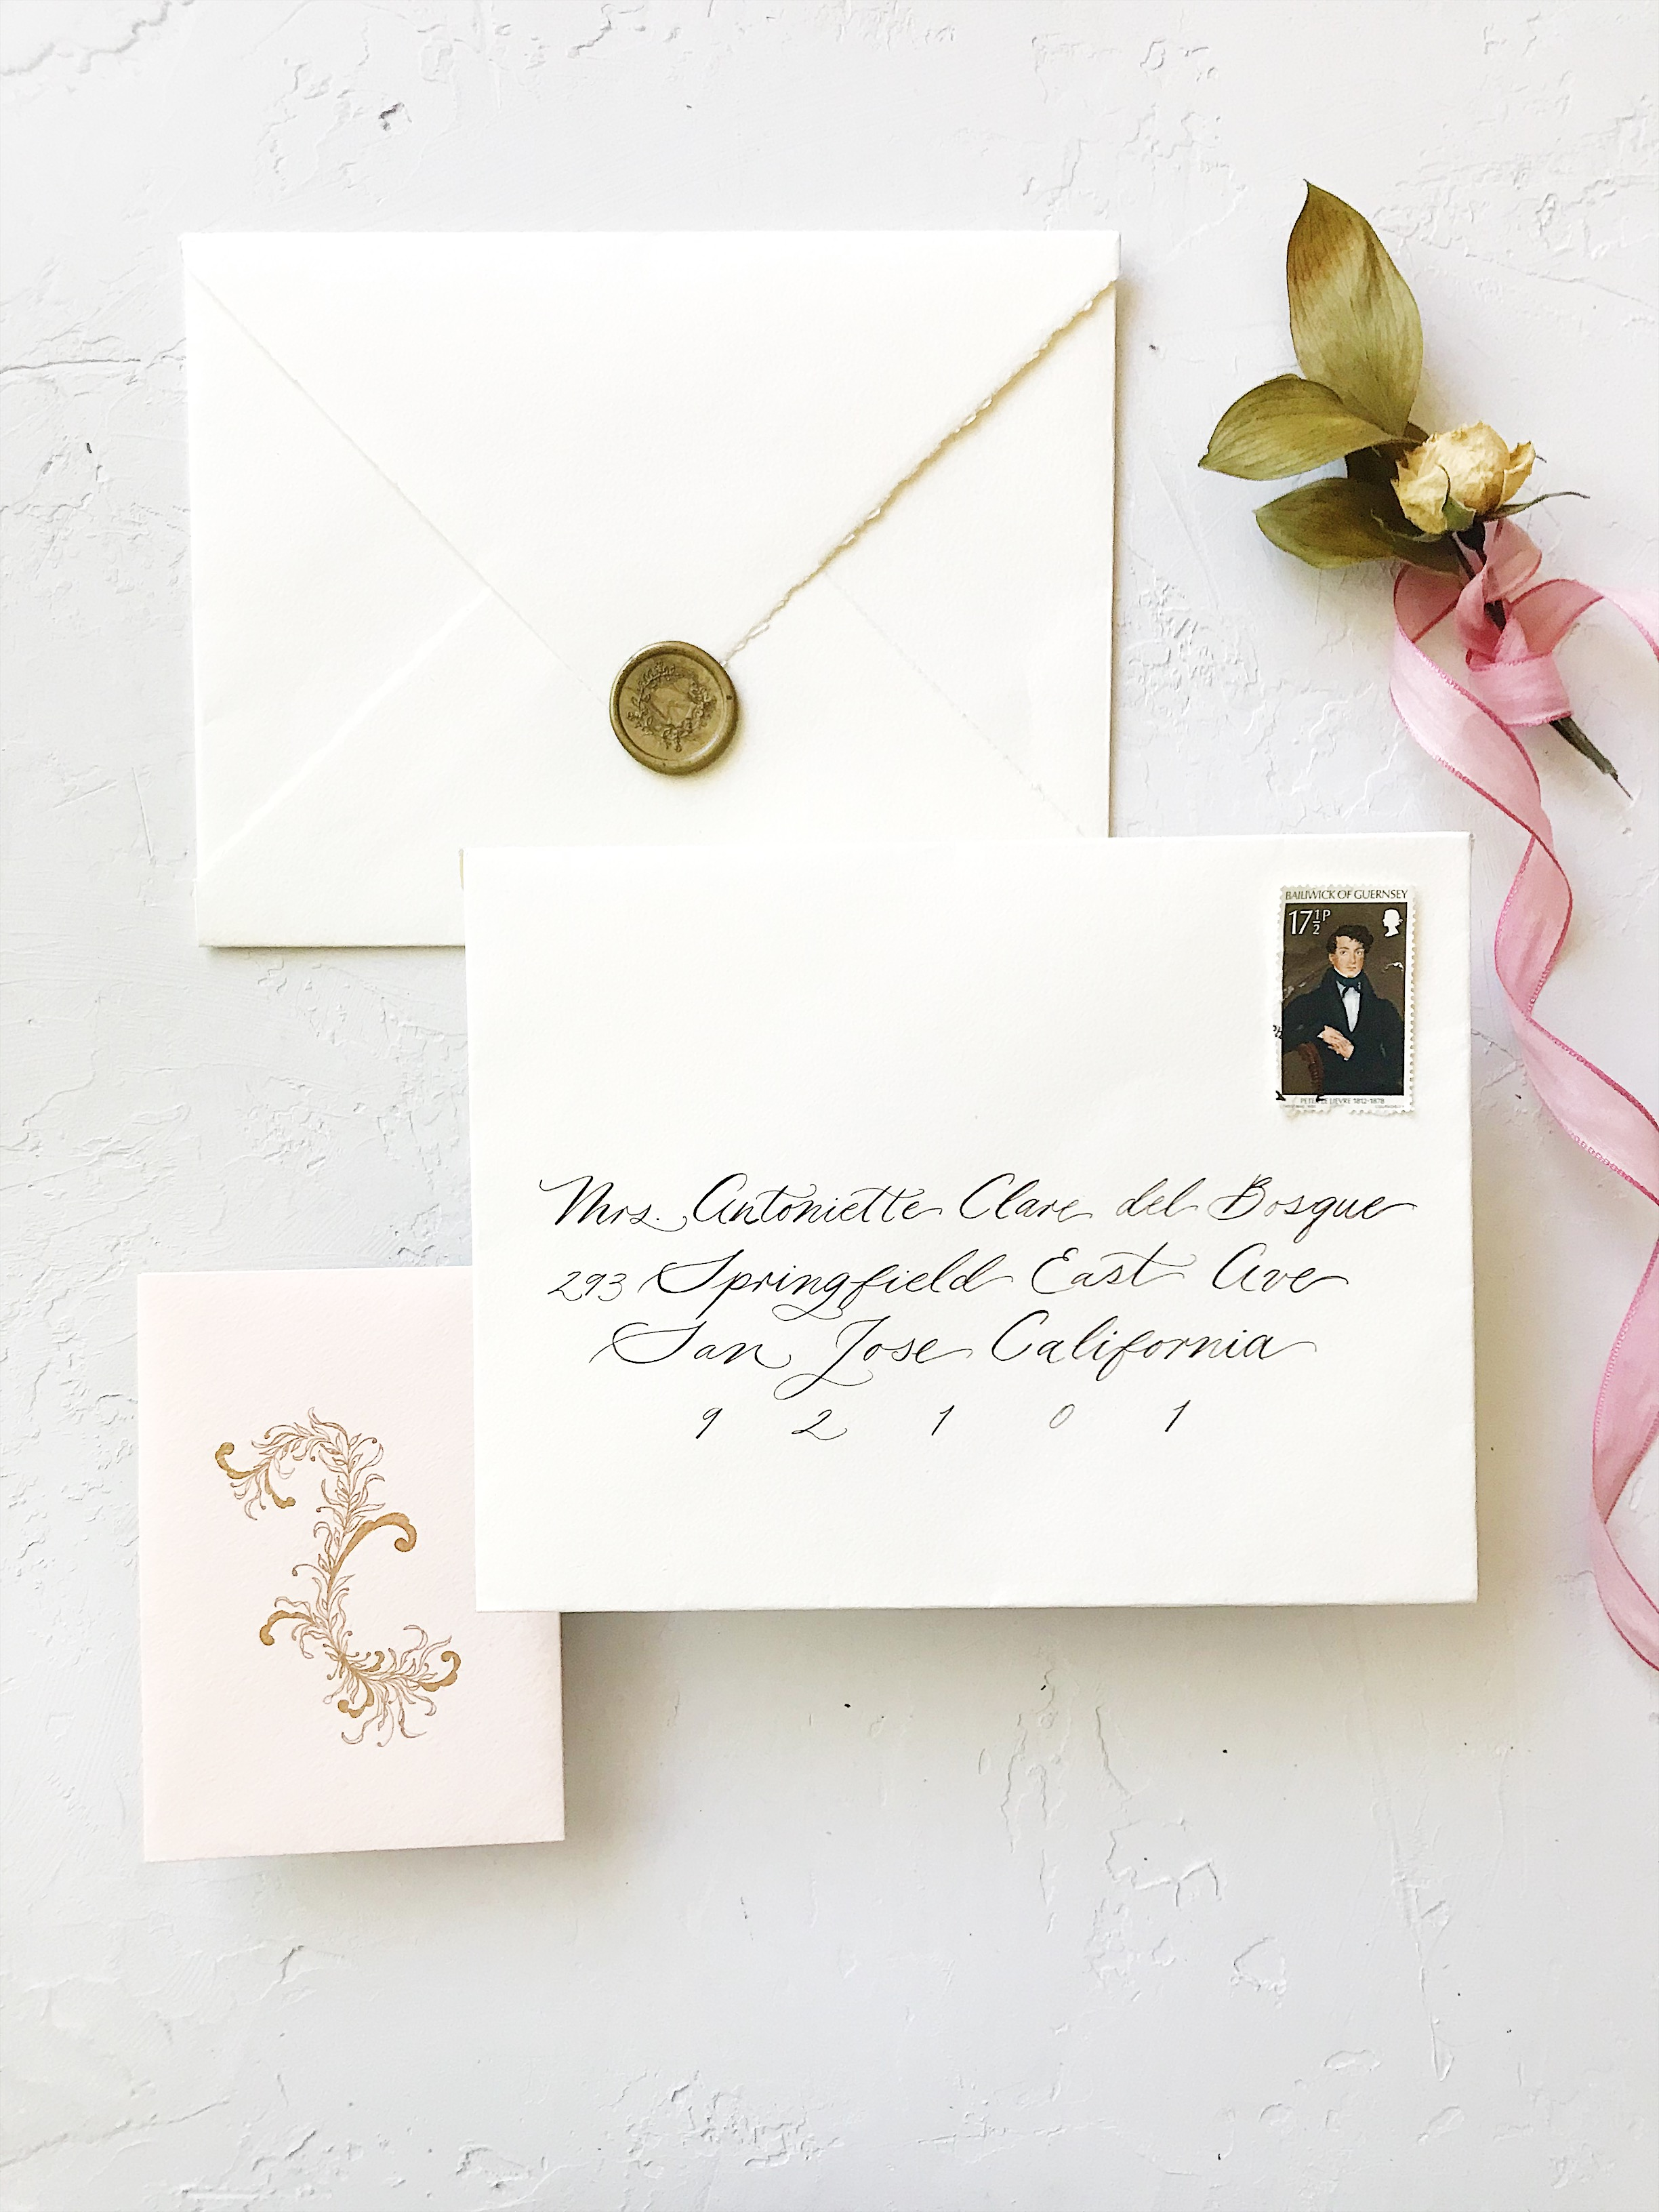 Bespoke Wedding Calligraphy Invitation Suite - Esperanza Atelier Fine Art Calligraphy. Bespoke Wedding envelope Calligraphy Houston weddings - Esperanza Atelier Fine Art Calligraphy. Houston Calligrapher. Peter Le Lievre Royal Vintage Mail Stamp (stamped on 15 November 1980) and a botanical gold wax seal.  The sepia ink goes beautifully well with the muted neutral color of the envelopes.